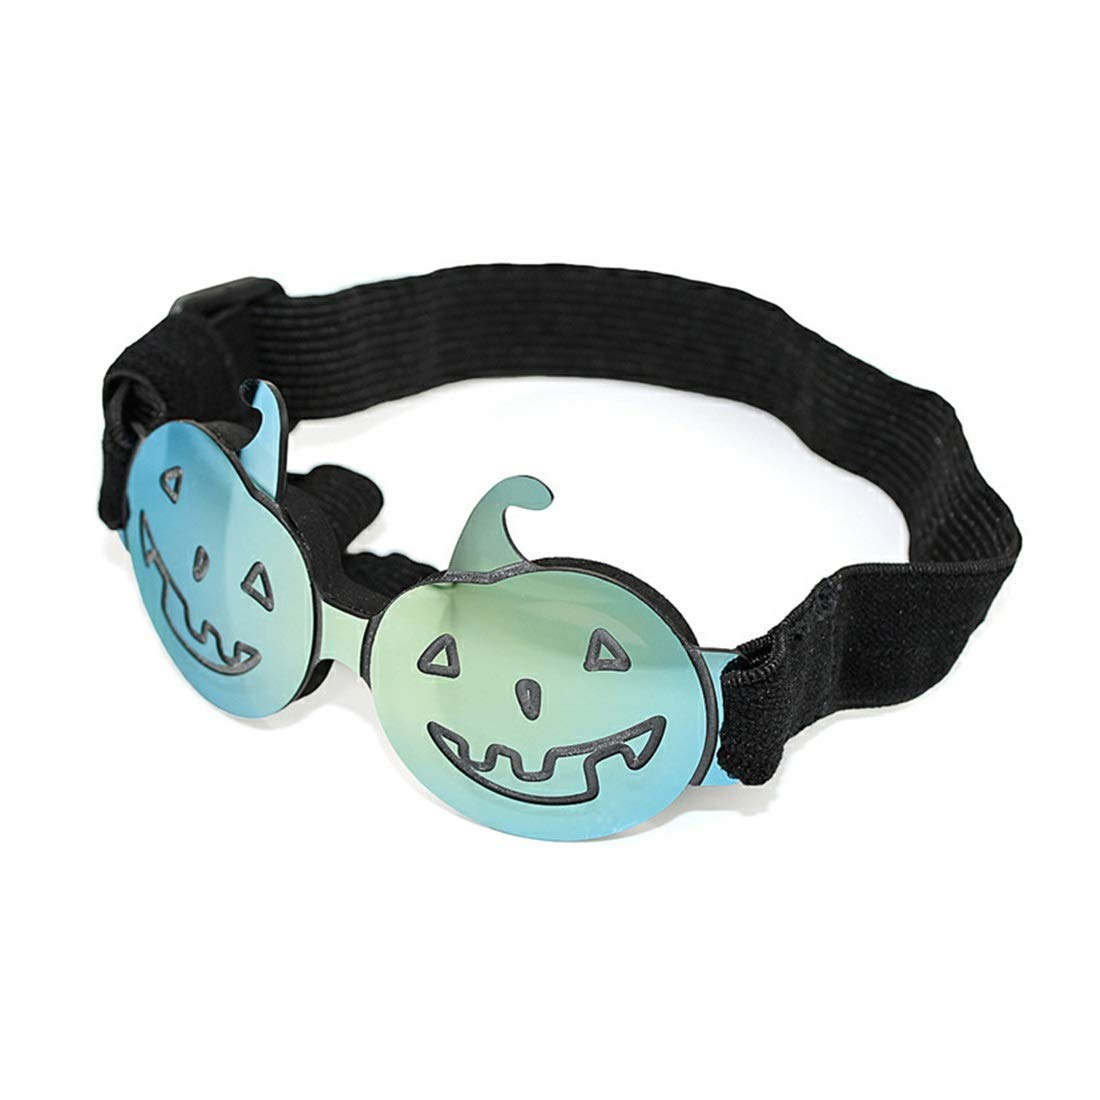 YUHAO Pet Sunglasses Halloween Funny Colorful Pumpkin Glasses Small and Medium Dogs Cats Apply,Colorful by YUHAO